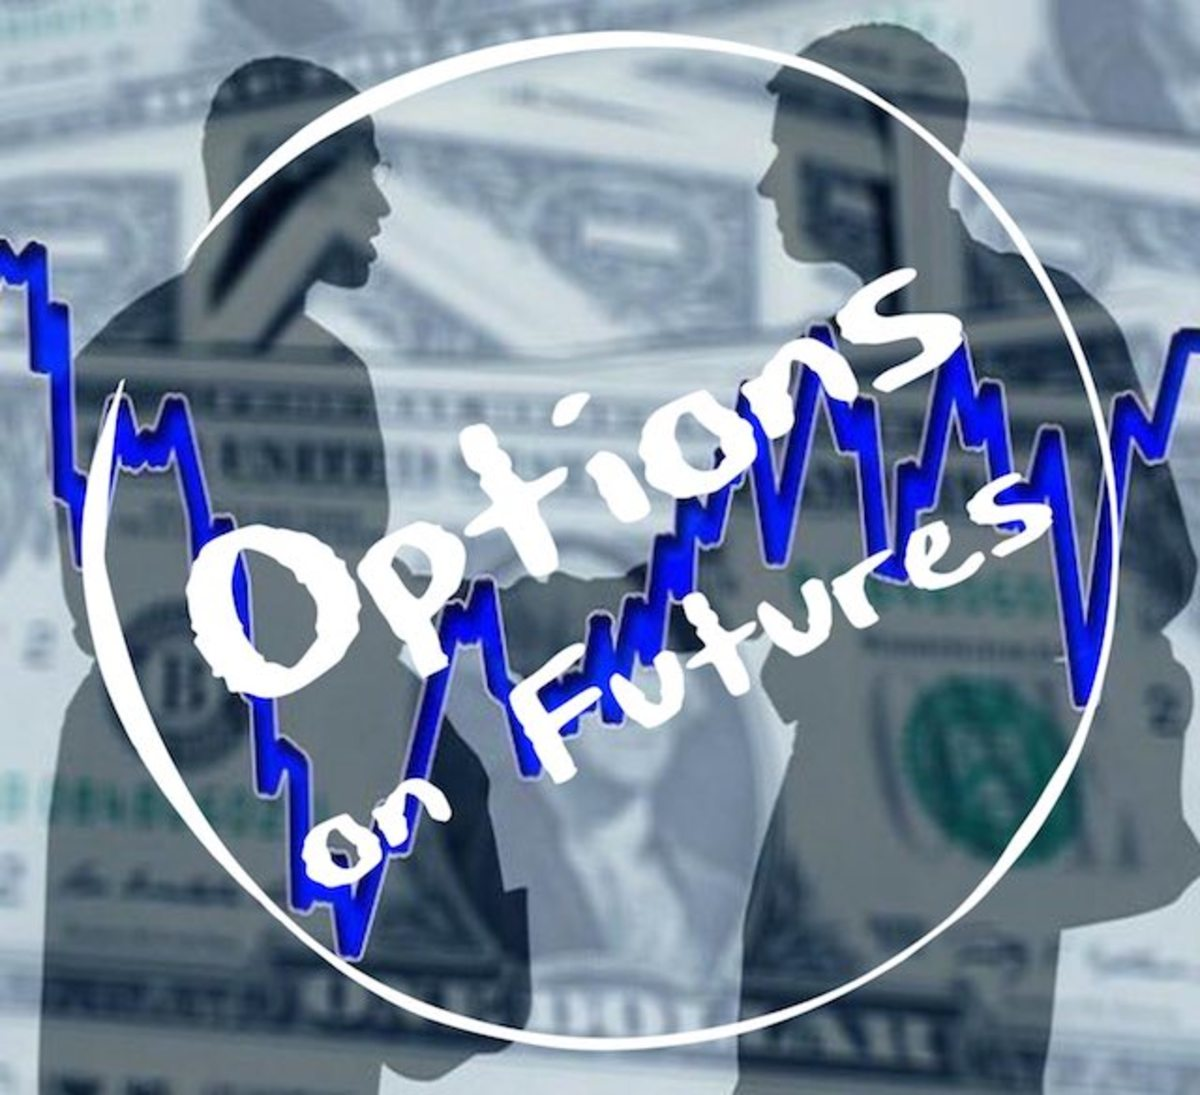 Selling Options on Futures Contracts Is About Earning Profits